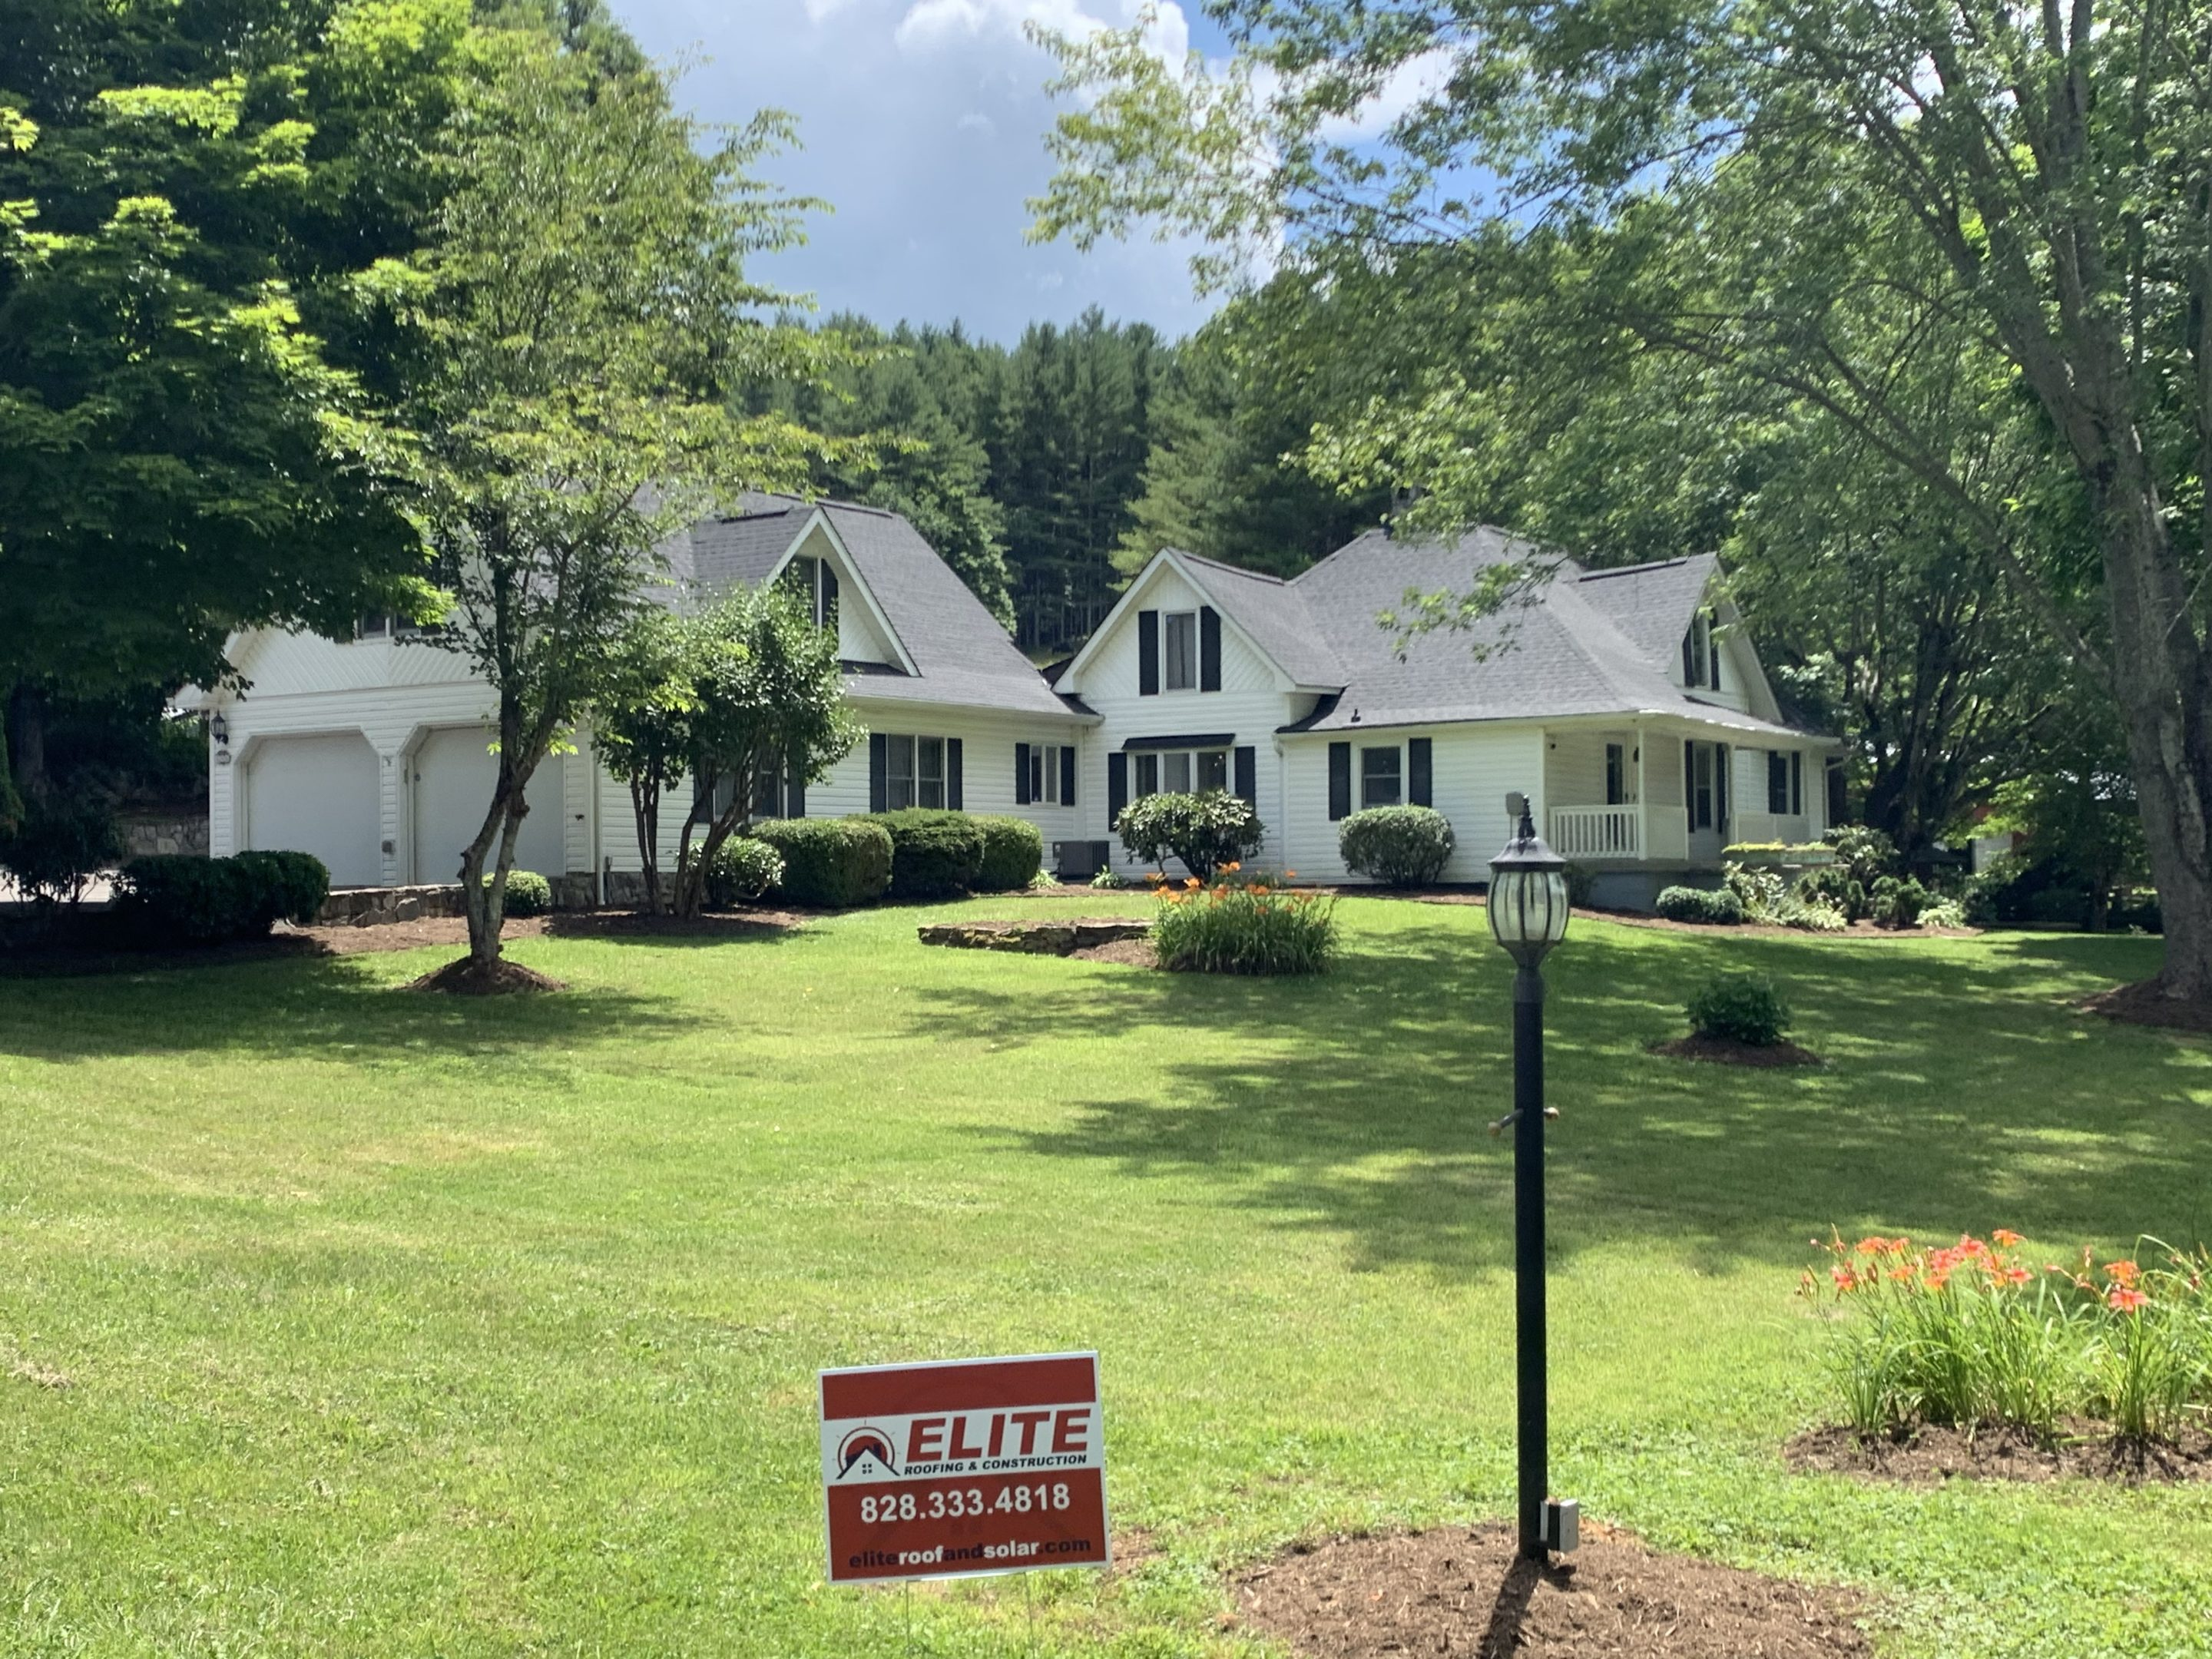 Roof replacement project in Blue Ridge Mountains